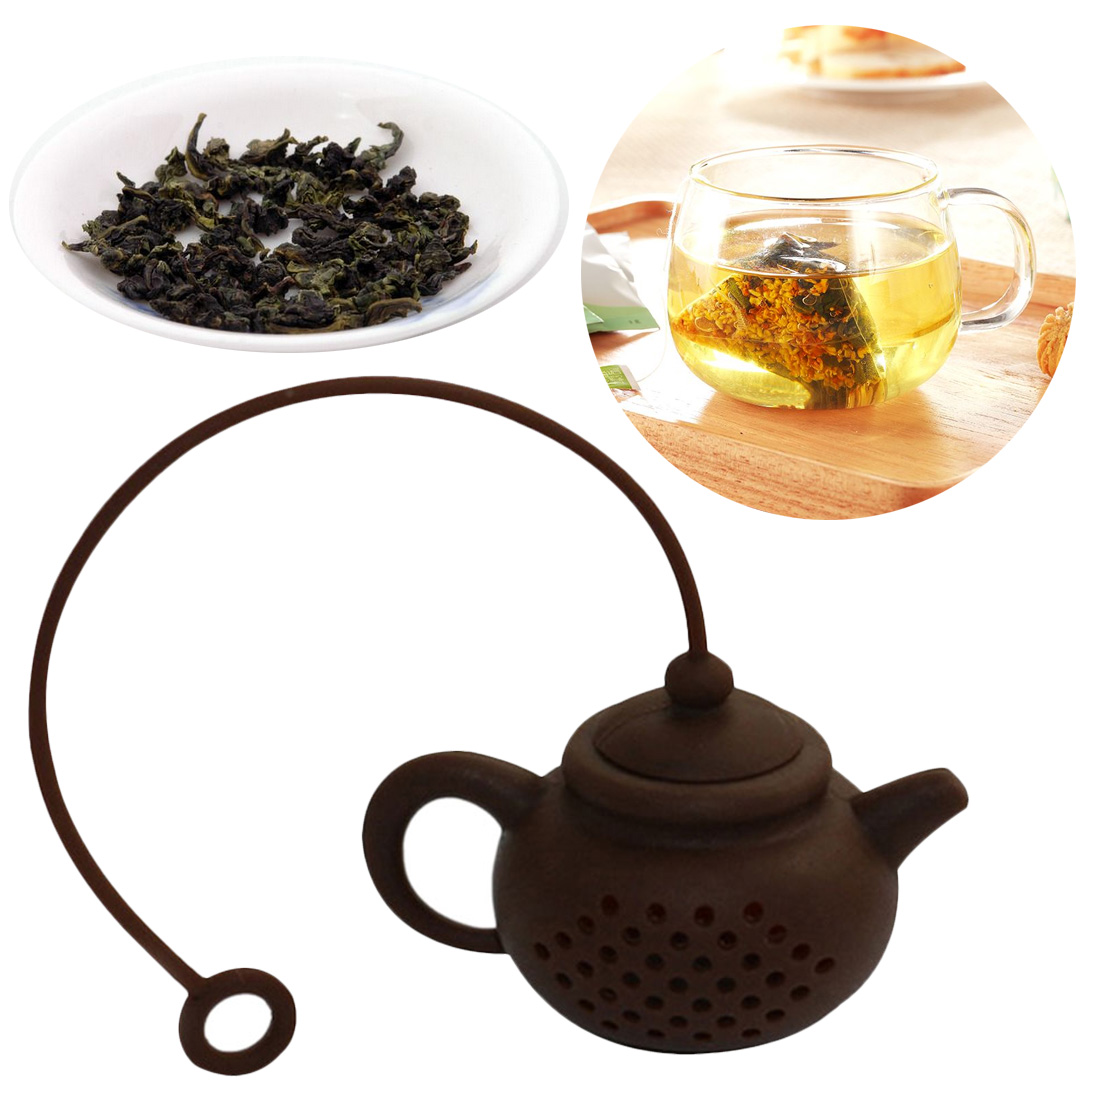 Creative Silicone Tea Bag Tea Pot Shape Tea Filter Safely Cleaning Reuseable Tea/Coffee Strainer Accessories